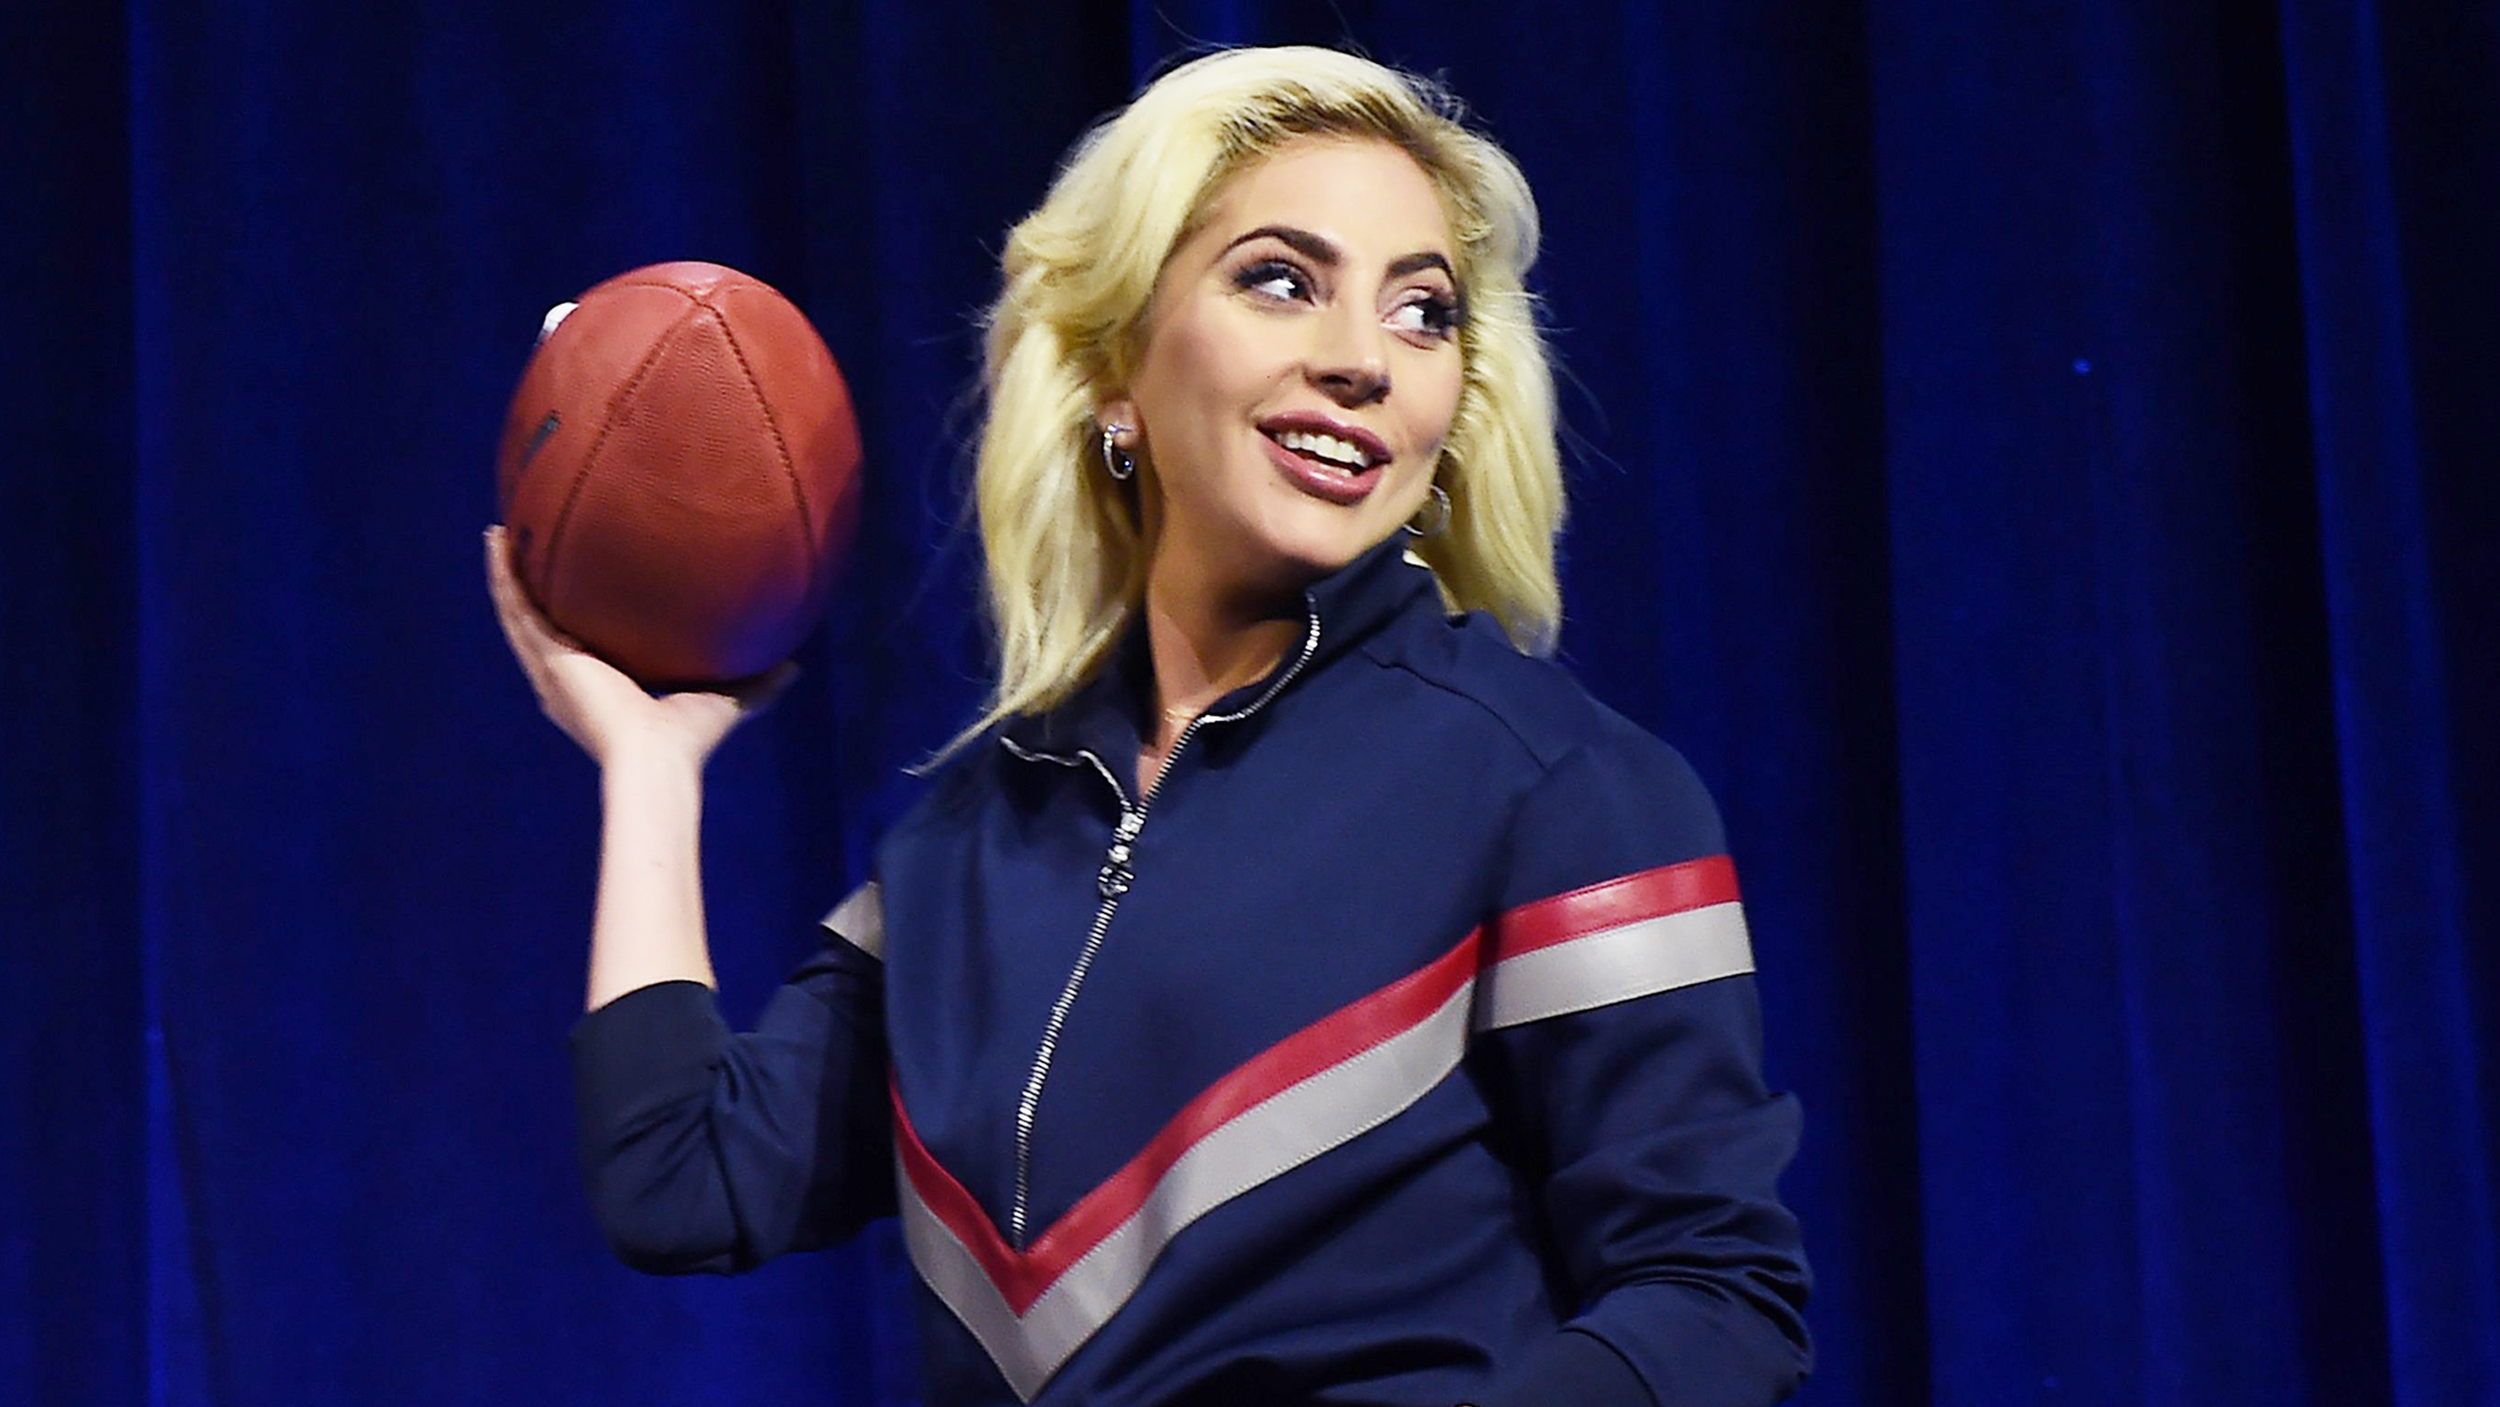 lady gaga at the super bowl  her mom weighs in